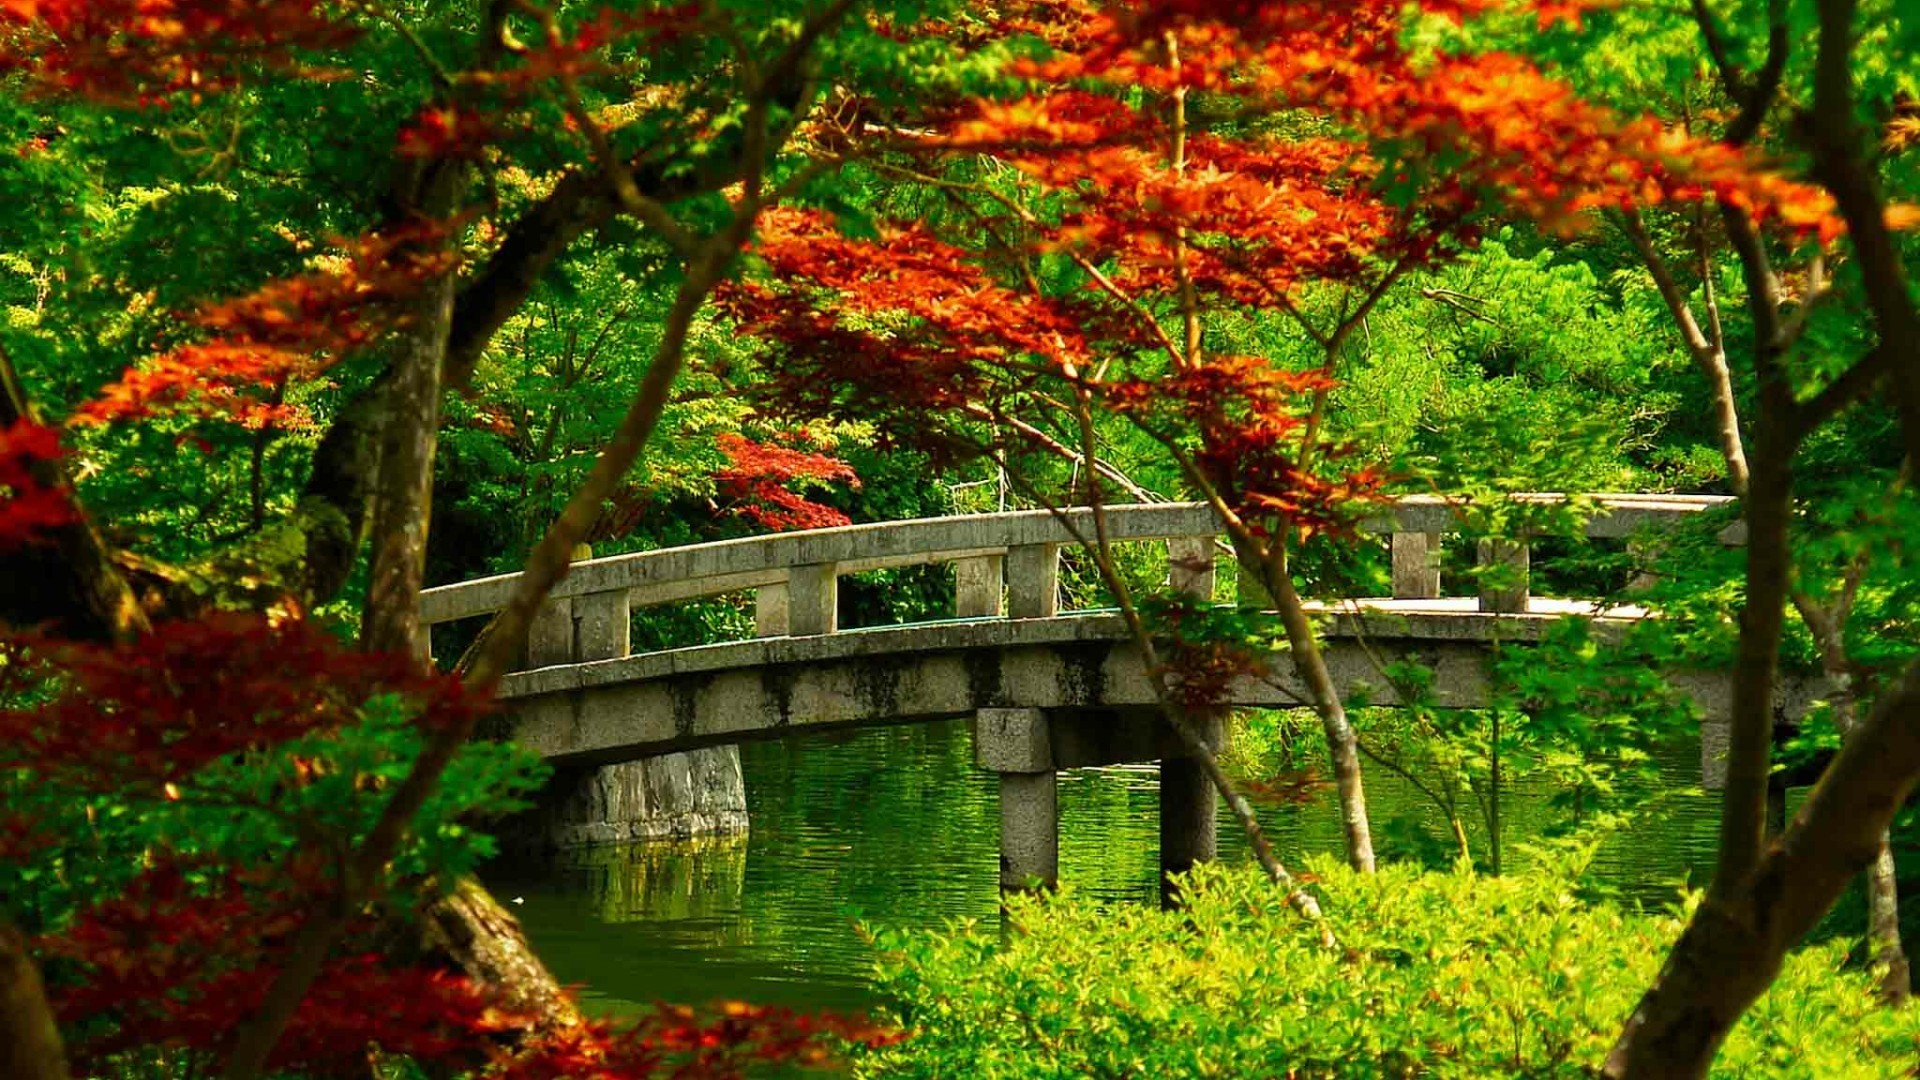 Res: 1920x1080, Japanese Garden Wallpaper | Wallpaper Studio 10 | Tens of thousands HD and  UltraHD wallpapers for Android, Windows and Xbox